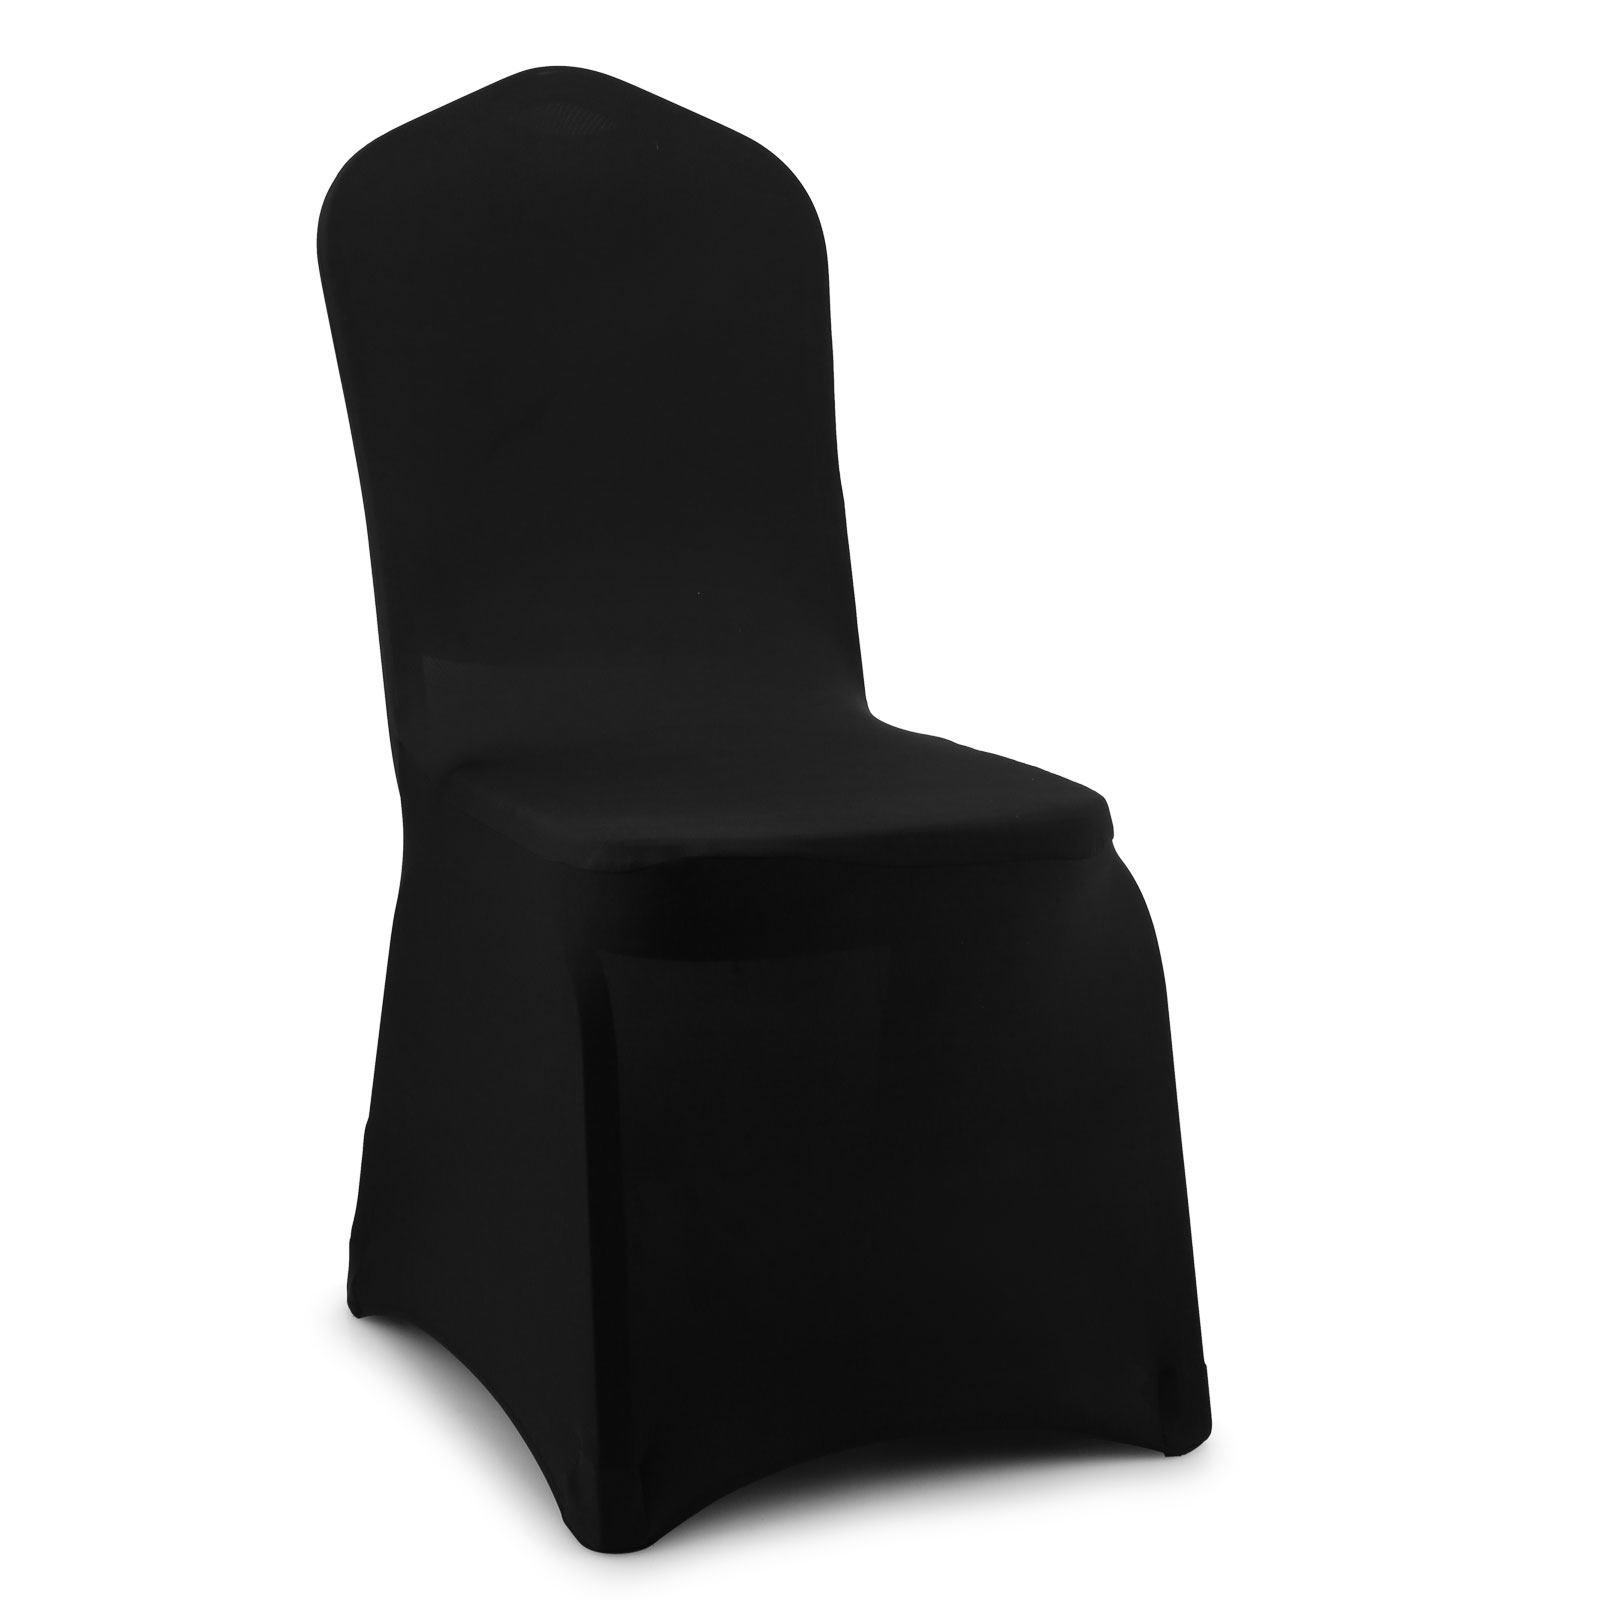 Ebay Chair Covers New 100 Spandex Lycra Chair Covers Banquet Wedding